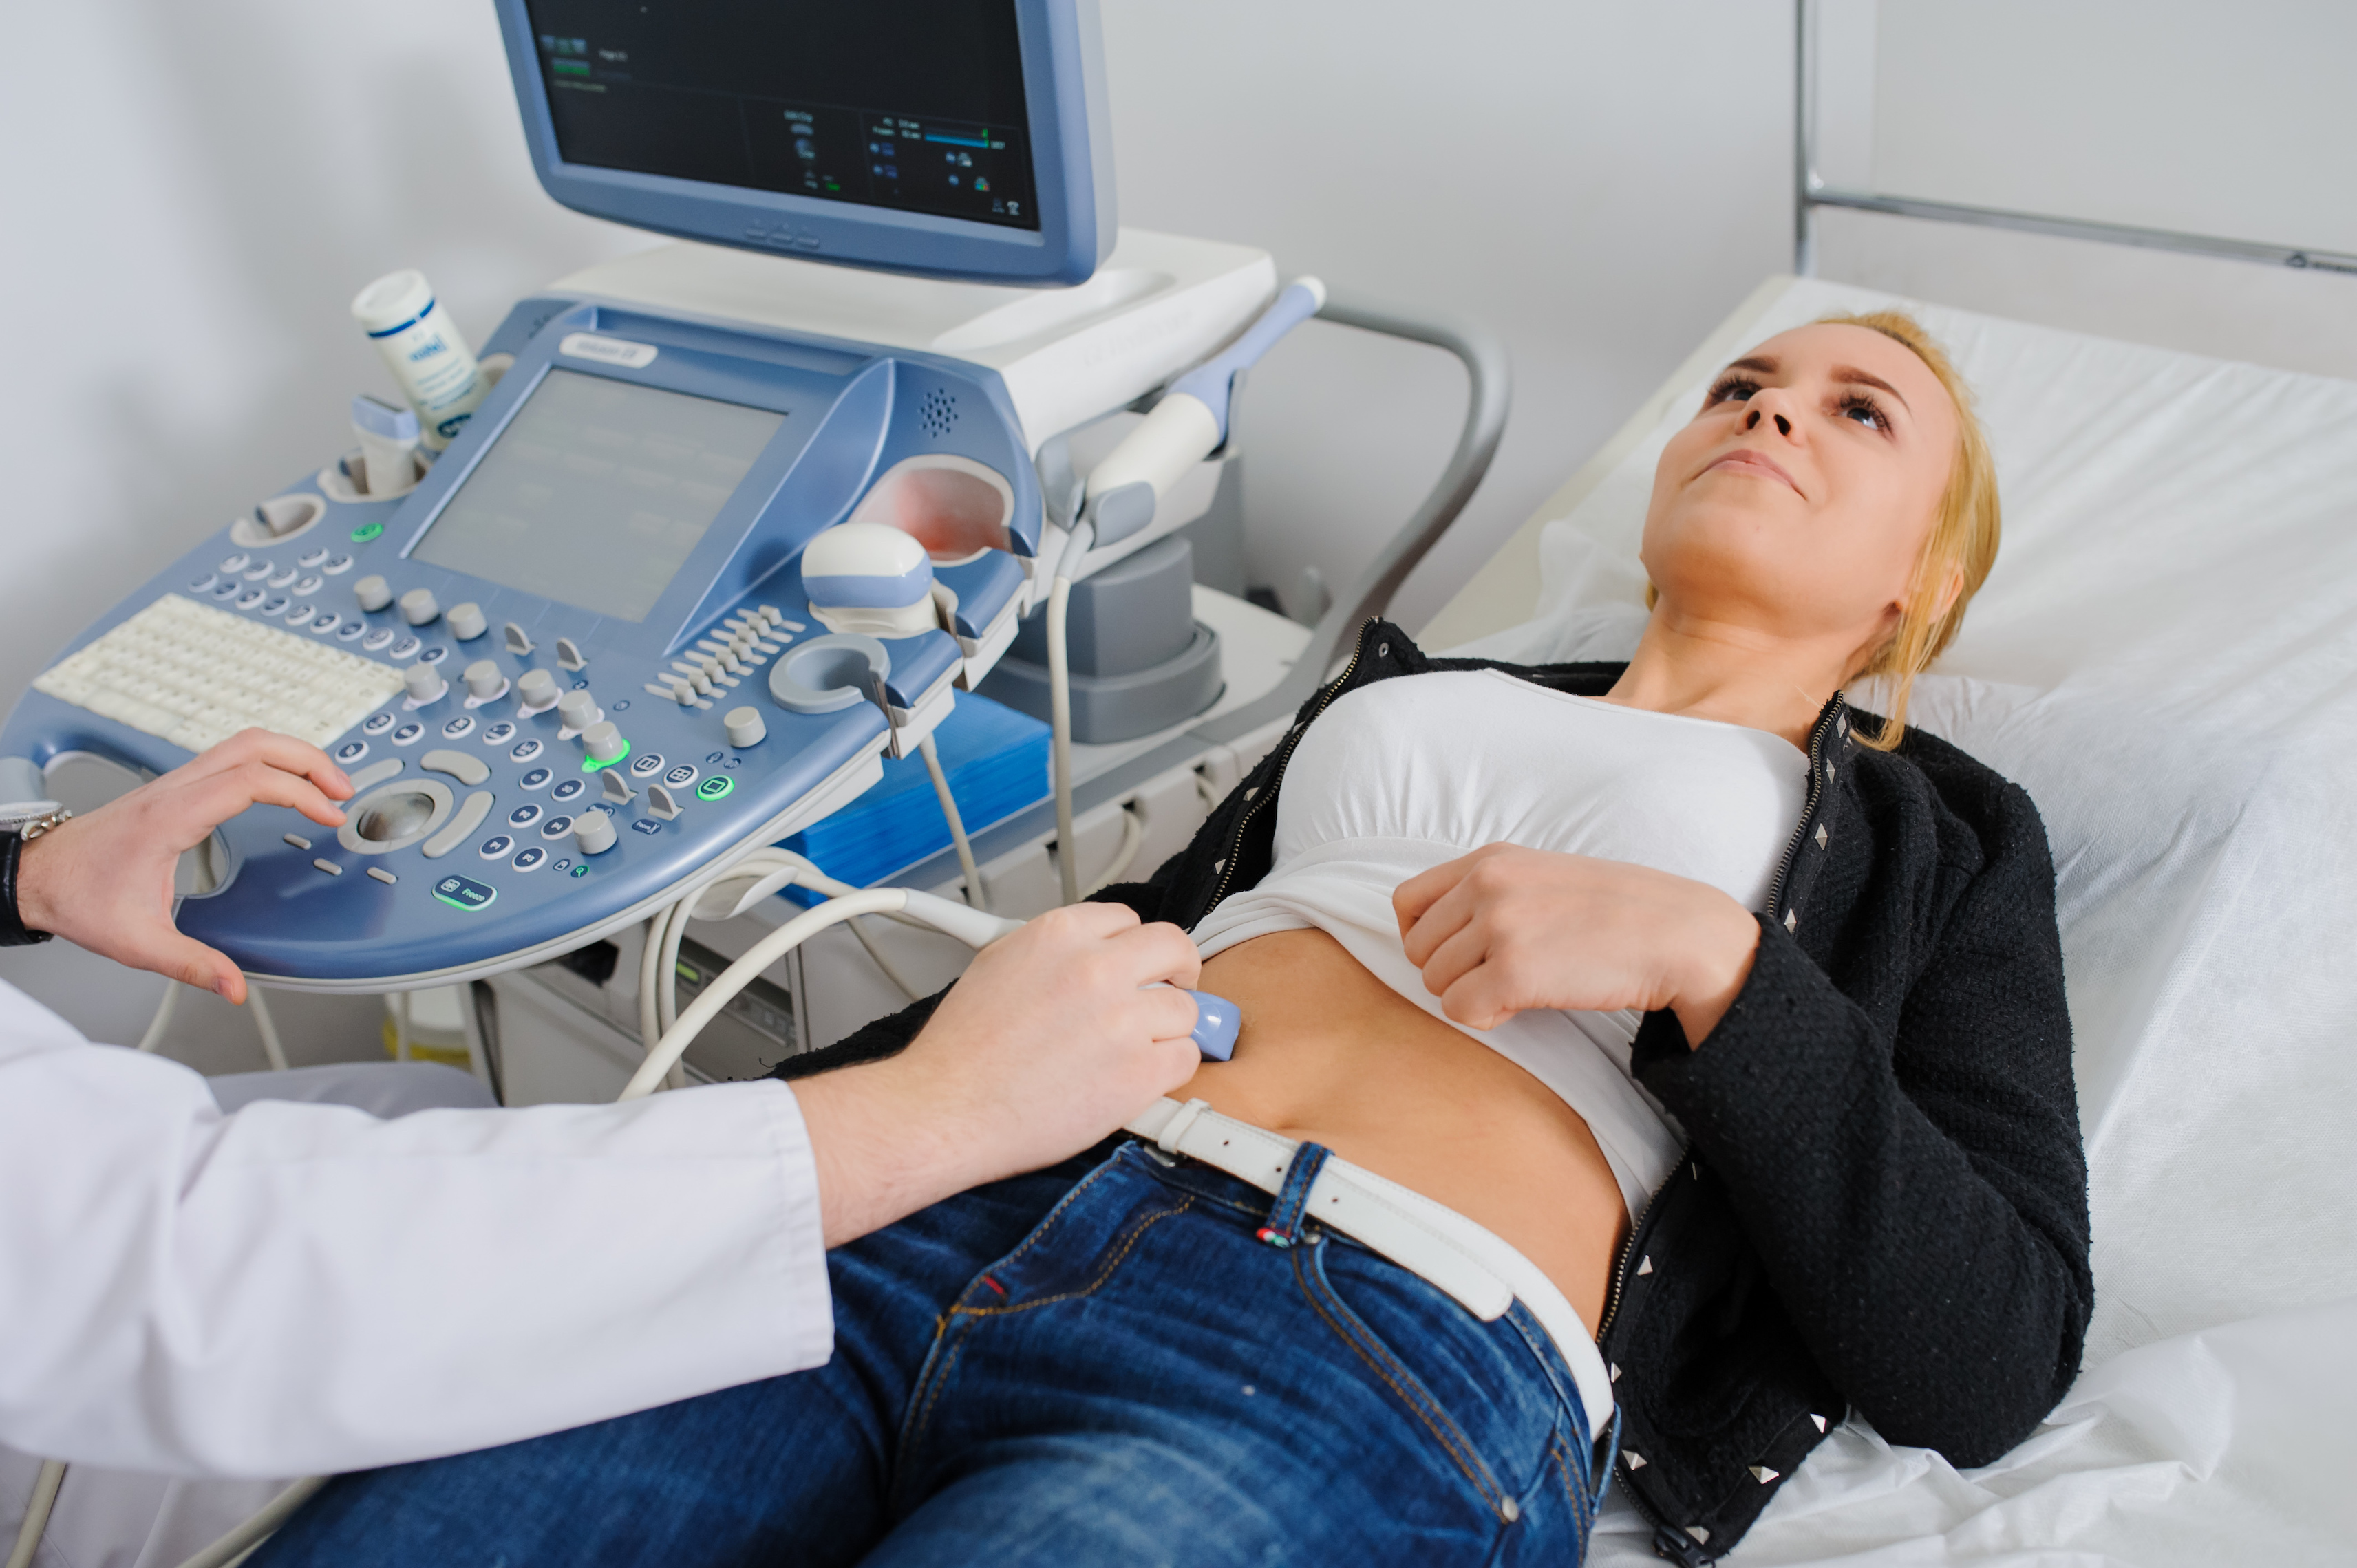 Why Choose Ultrasound Direct?